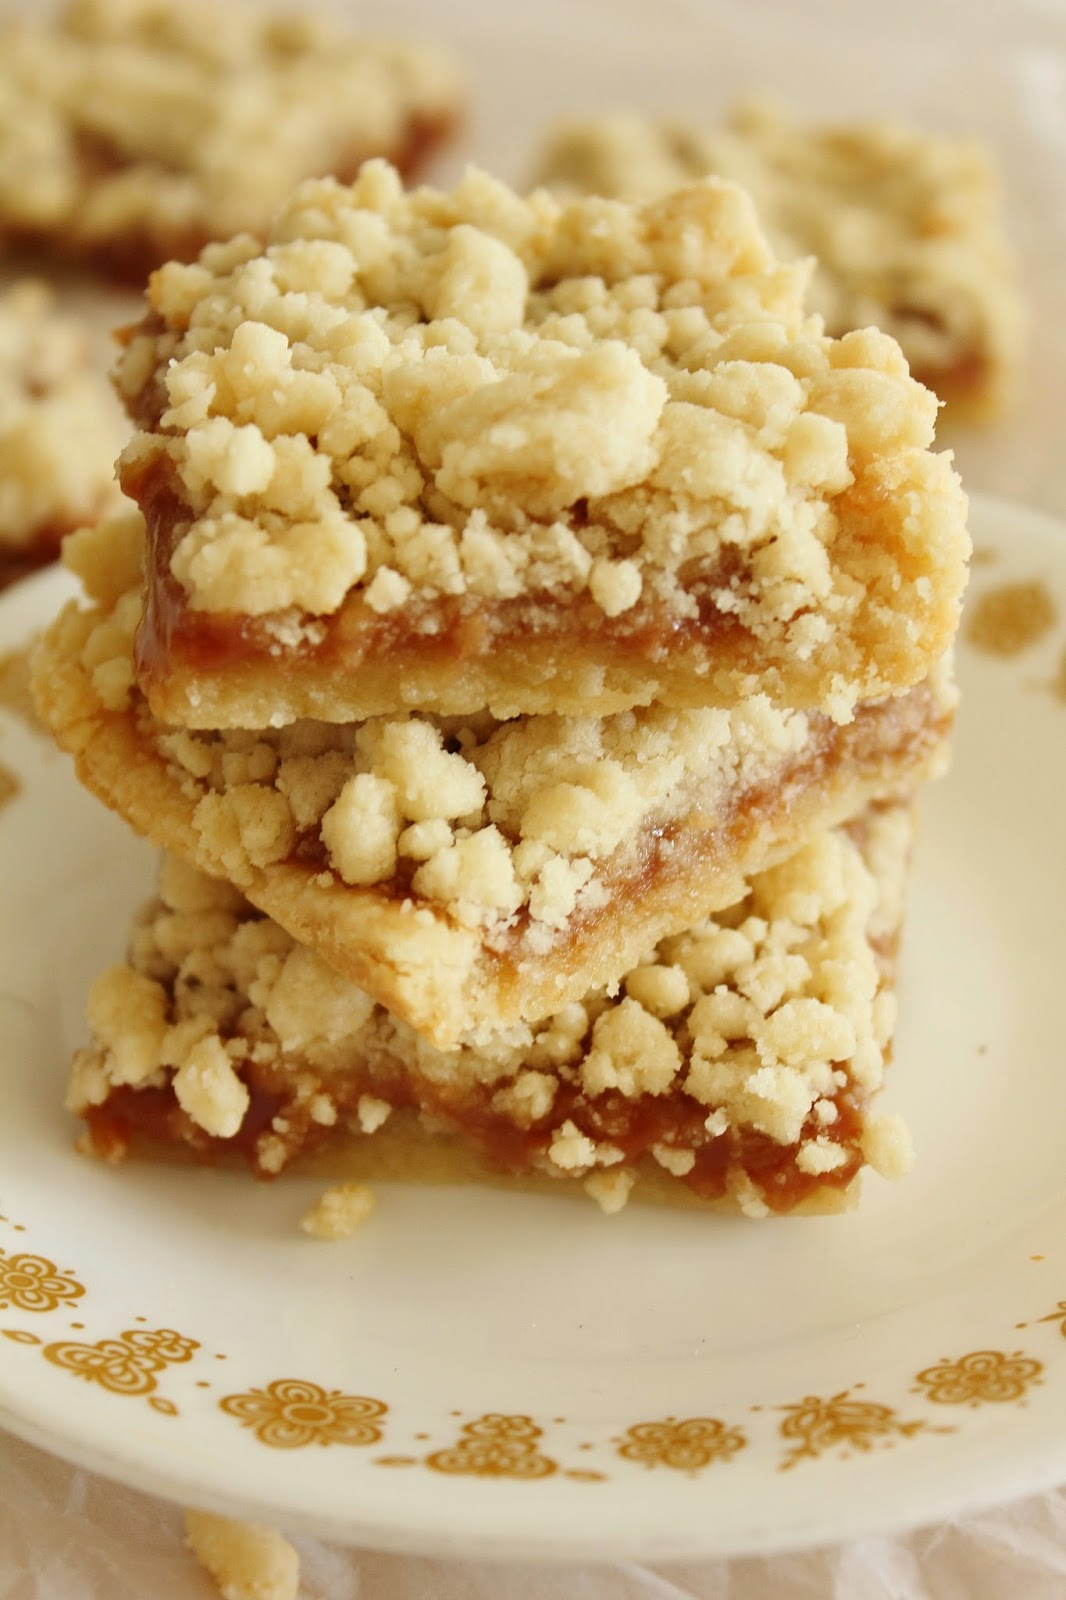 Salted Caramel Crumble Bars